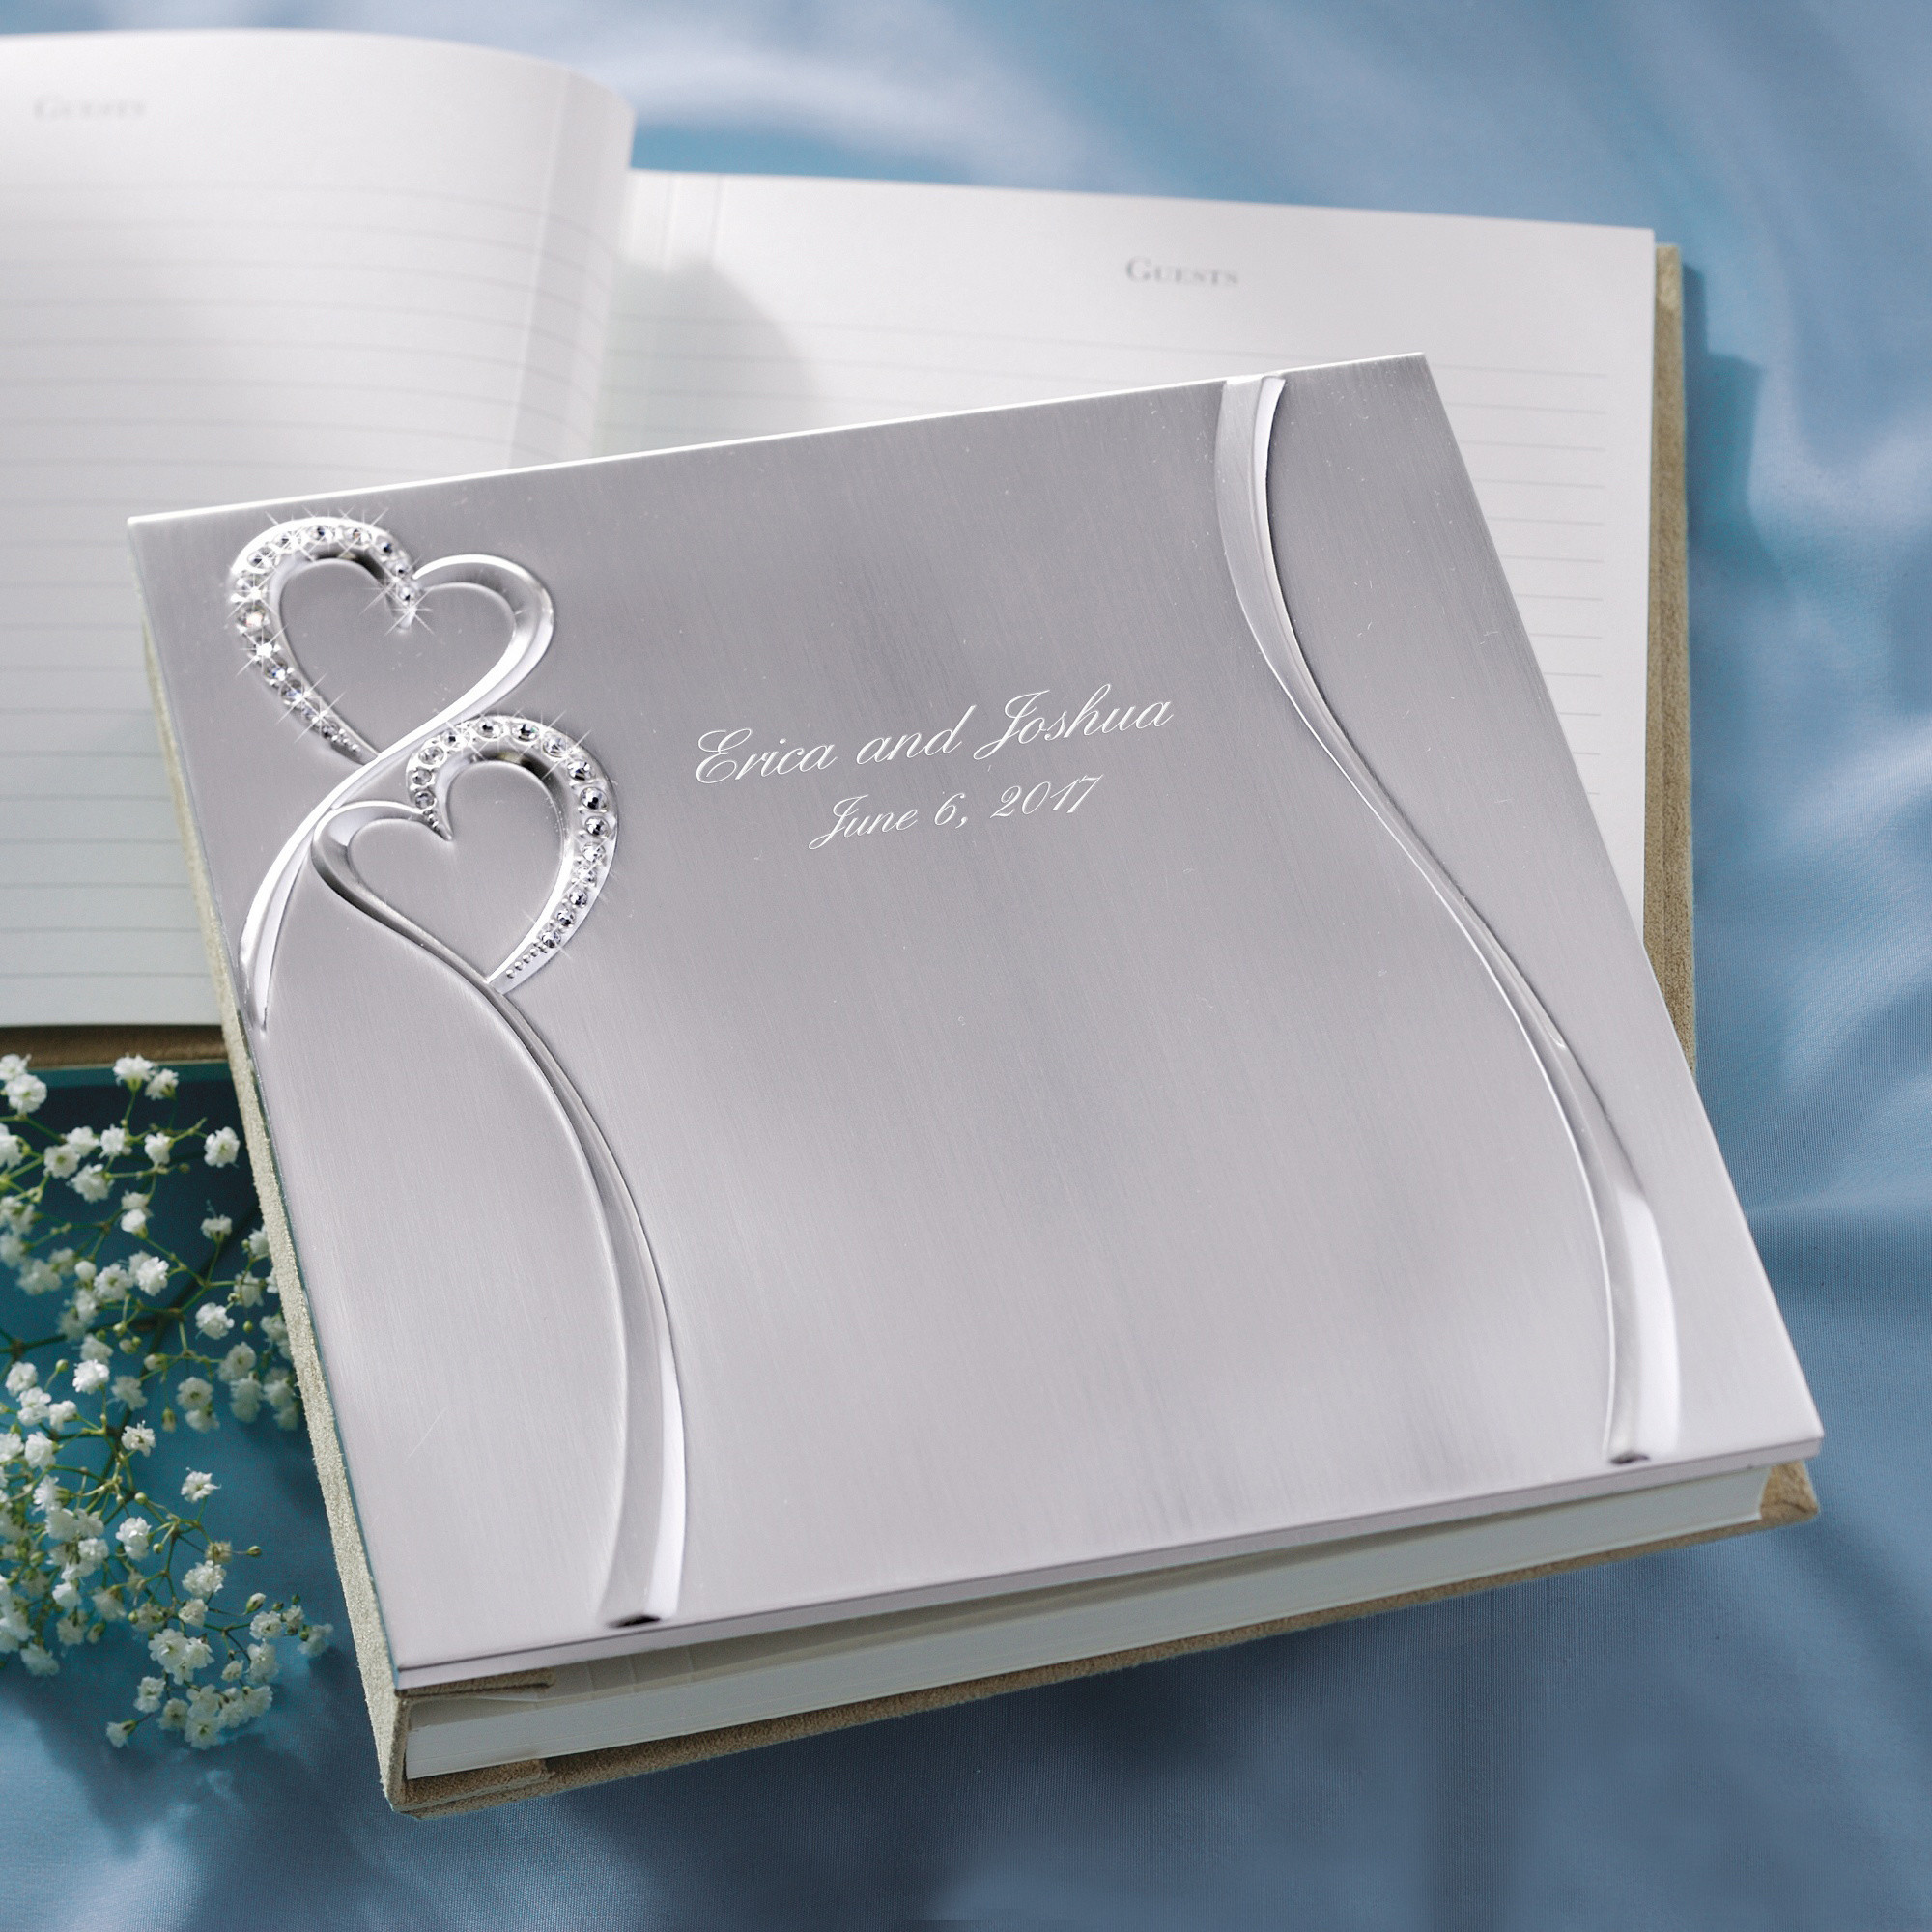 Wedding Guest Books twin hearts guest book wedding reception accessories